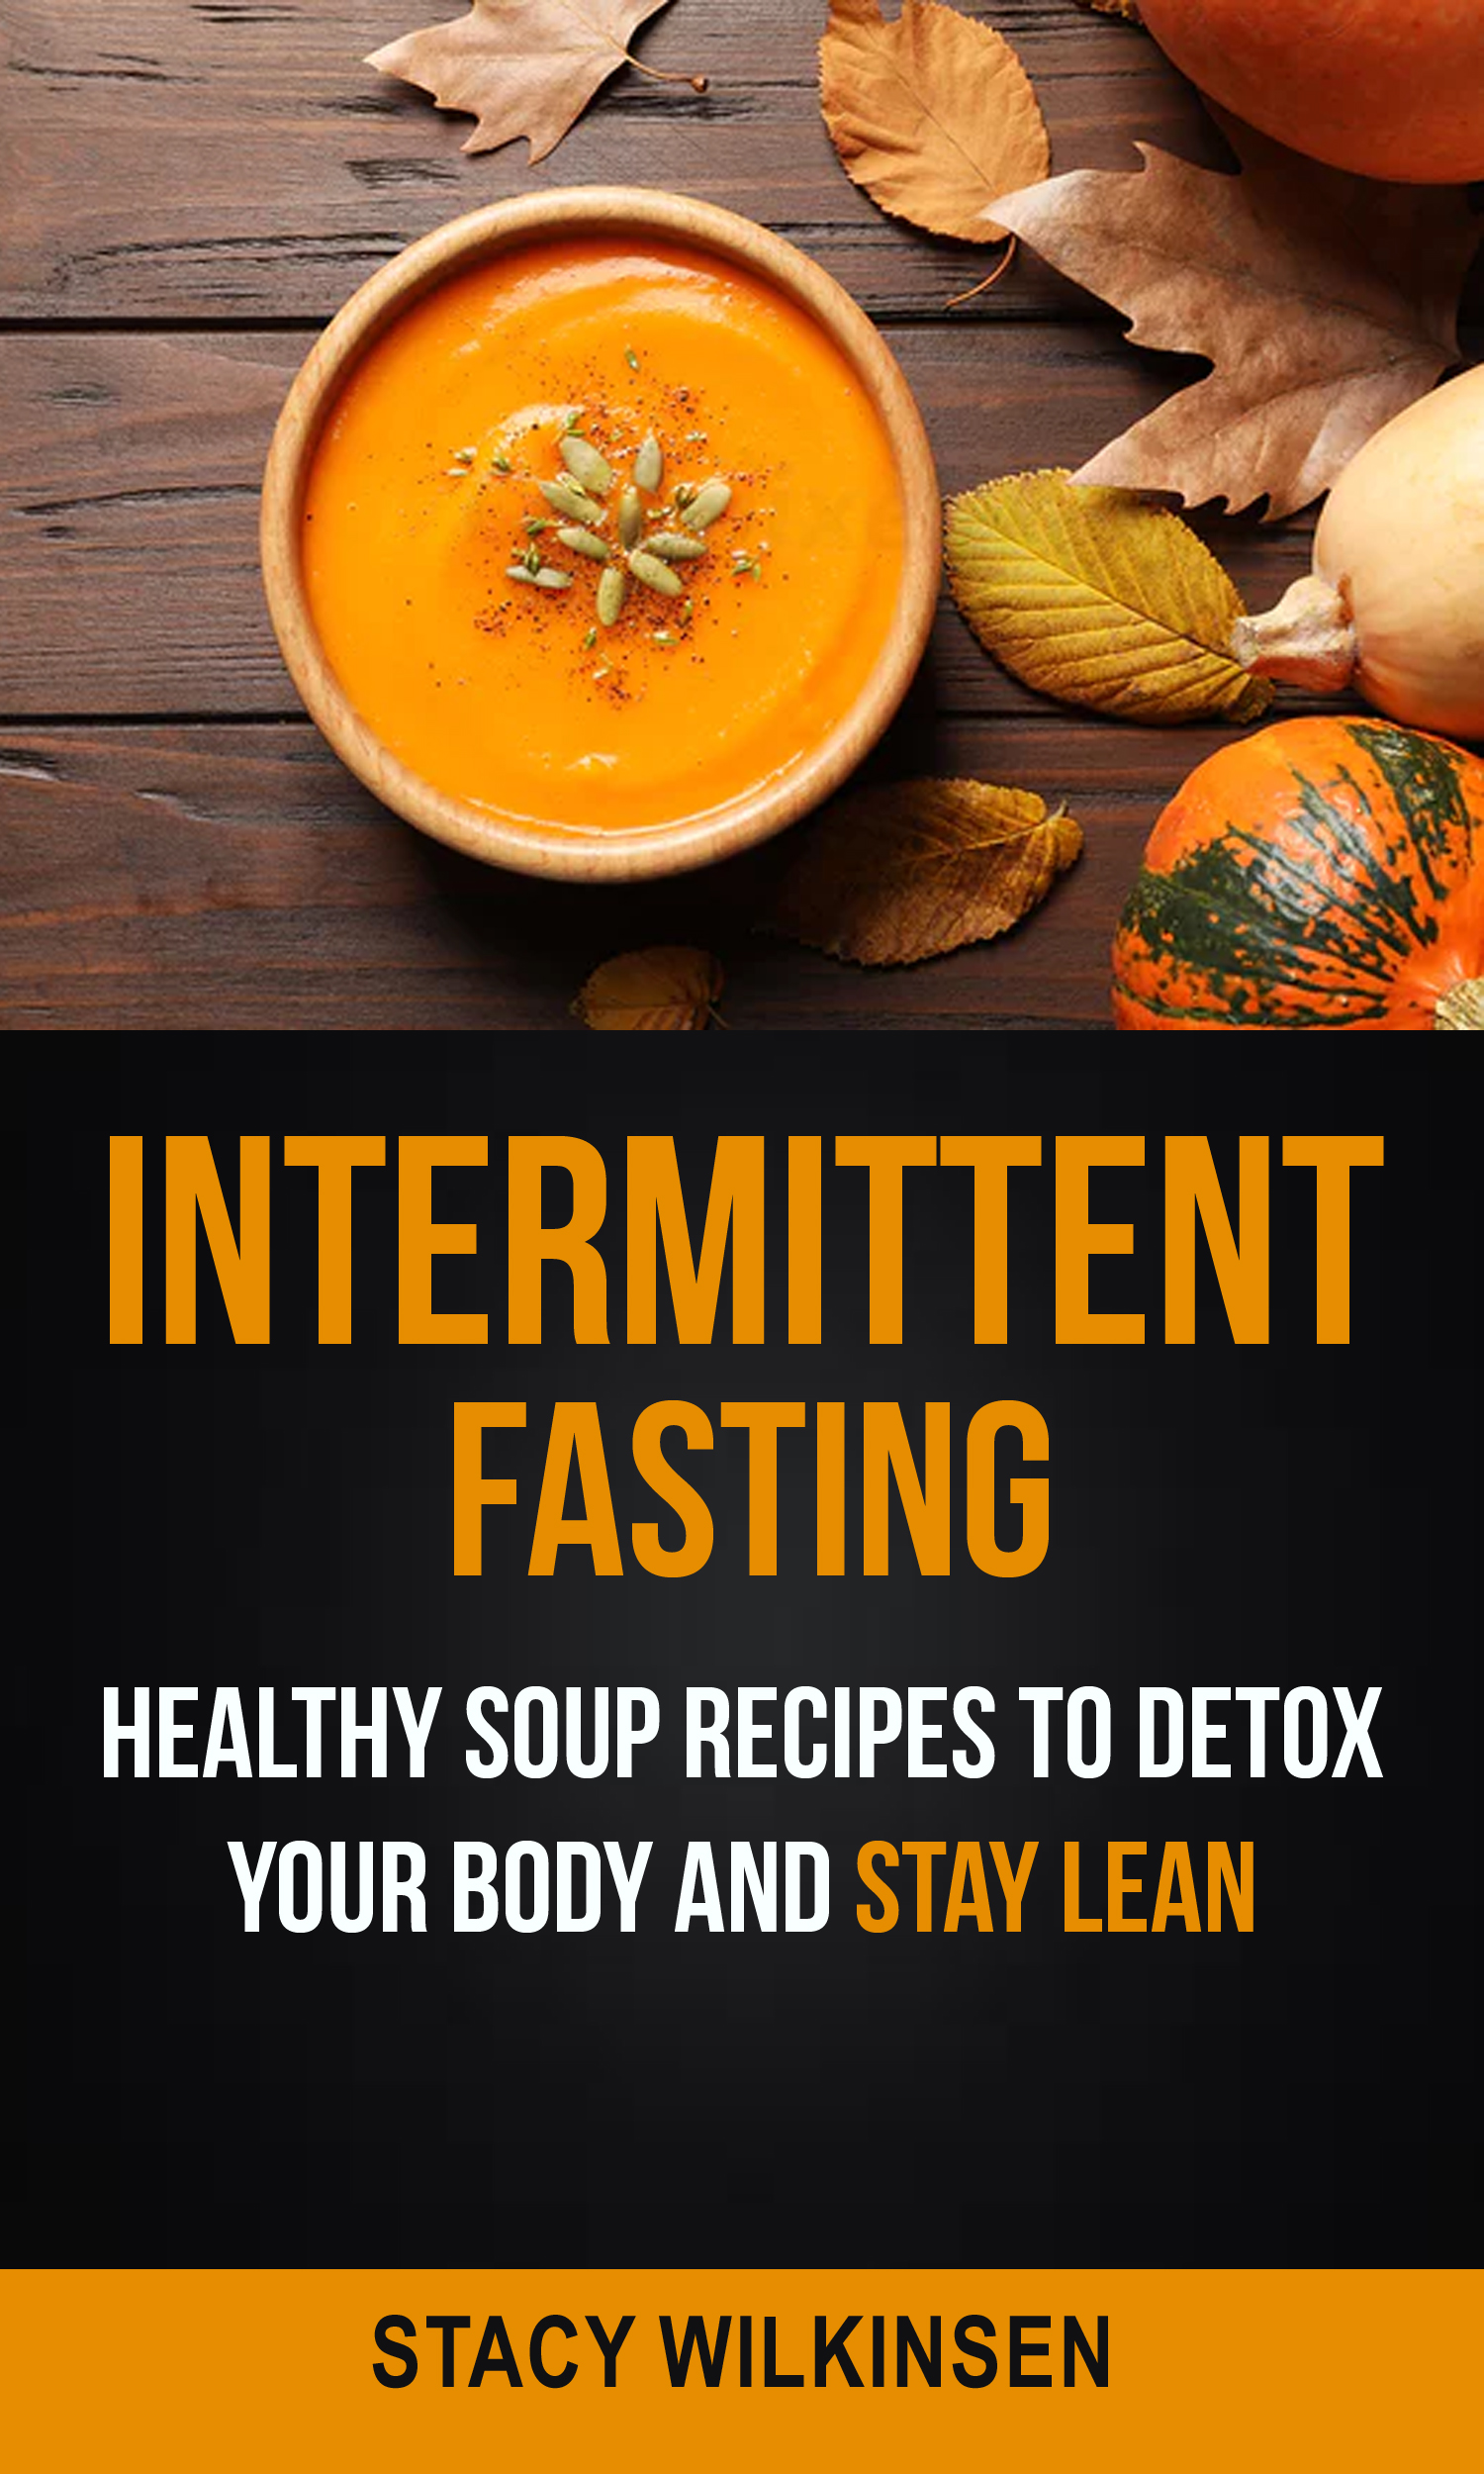 Intermittent fasting: healthy soup recipes to detox your body and stay lean